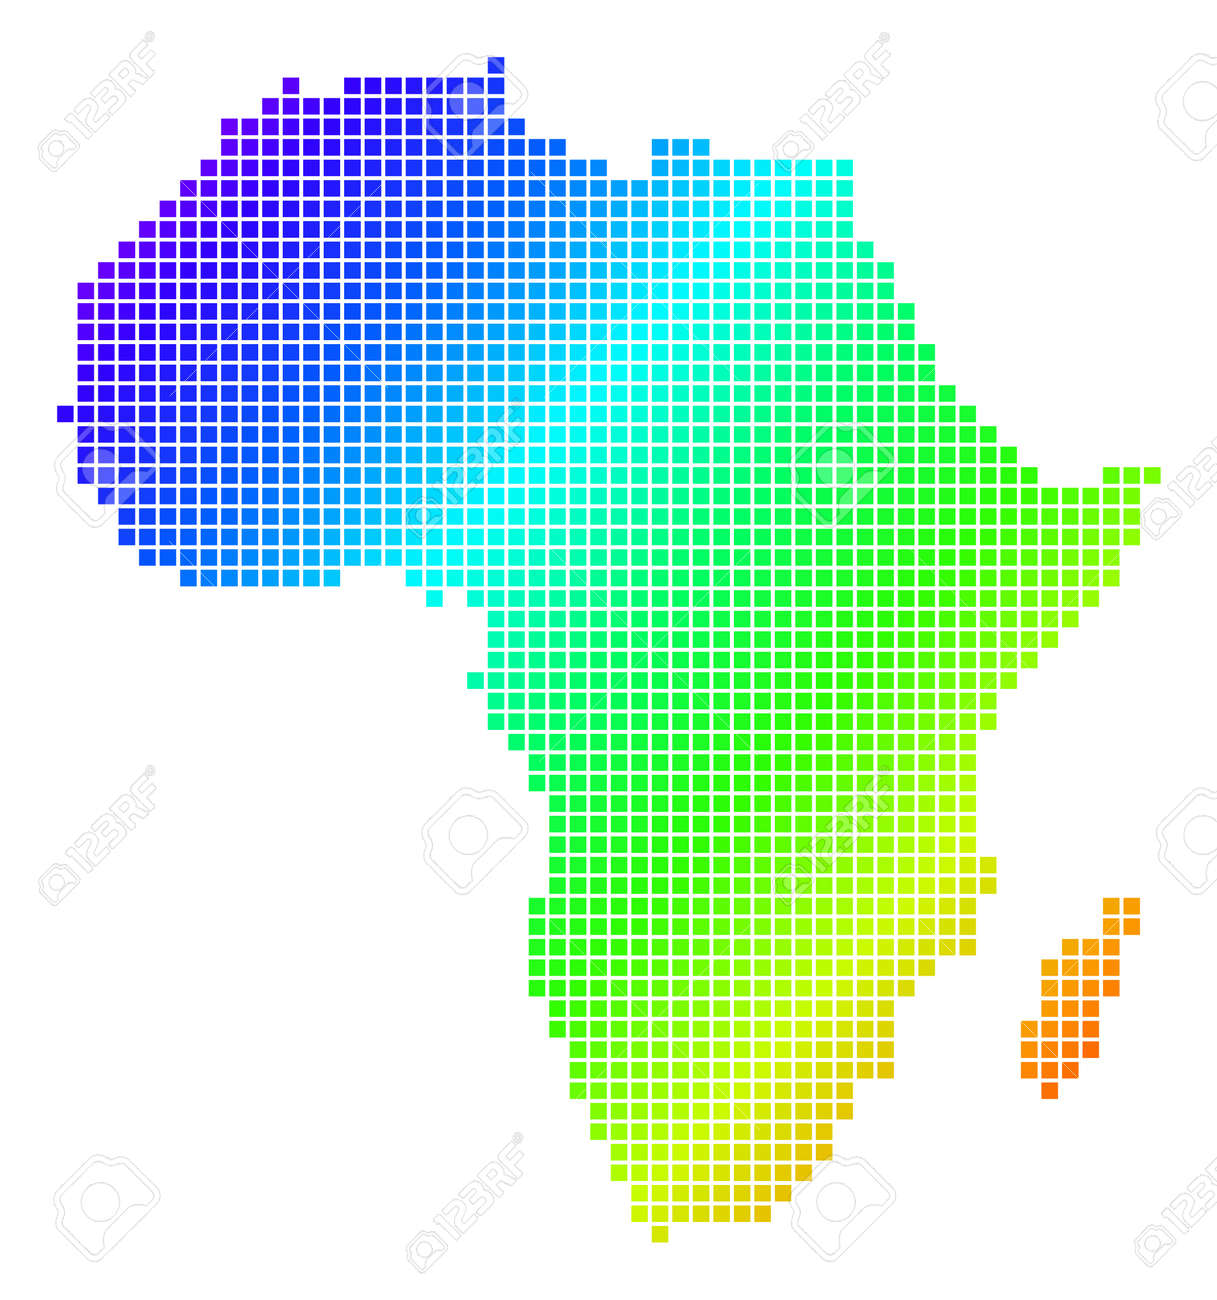 Plain Africa Map.Spectrum Dotted Pixel Africa Map Isolated On Plain Background